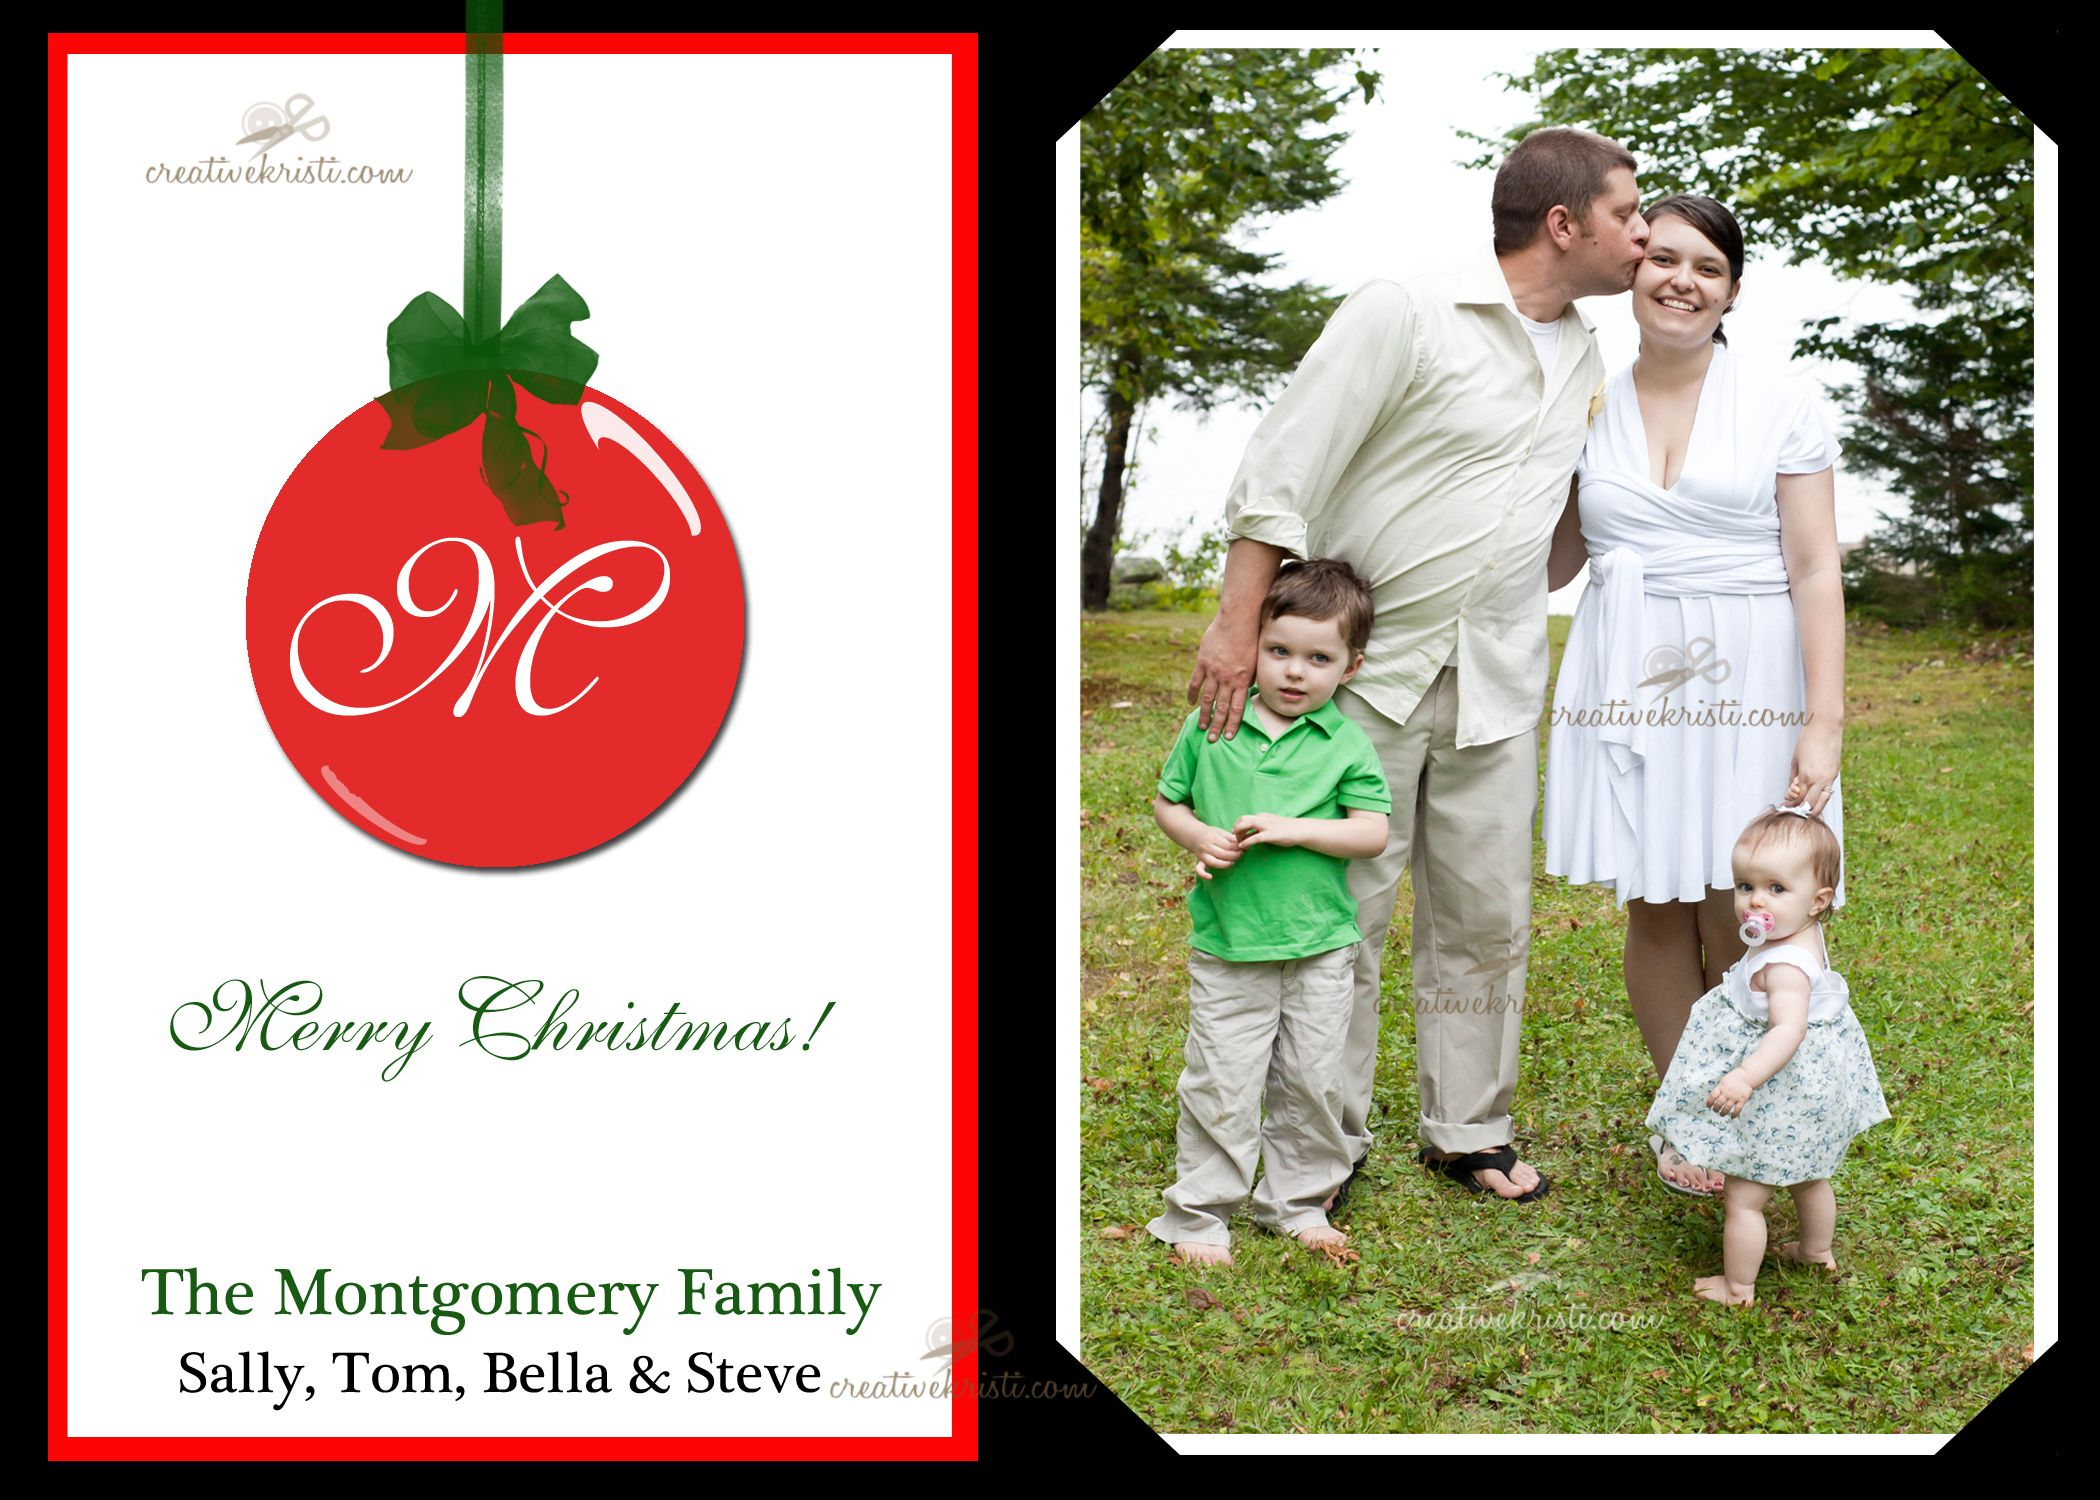 Free X Christmas Card TemplateDownload Add Your Photo And